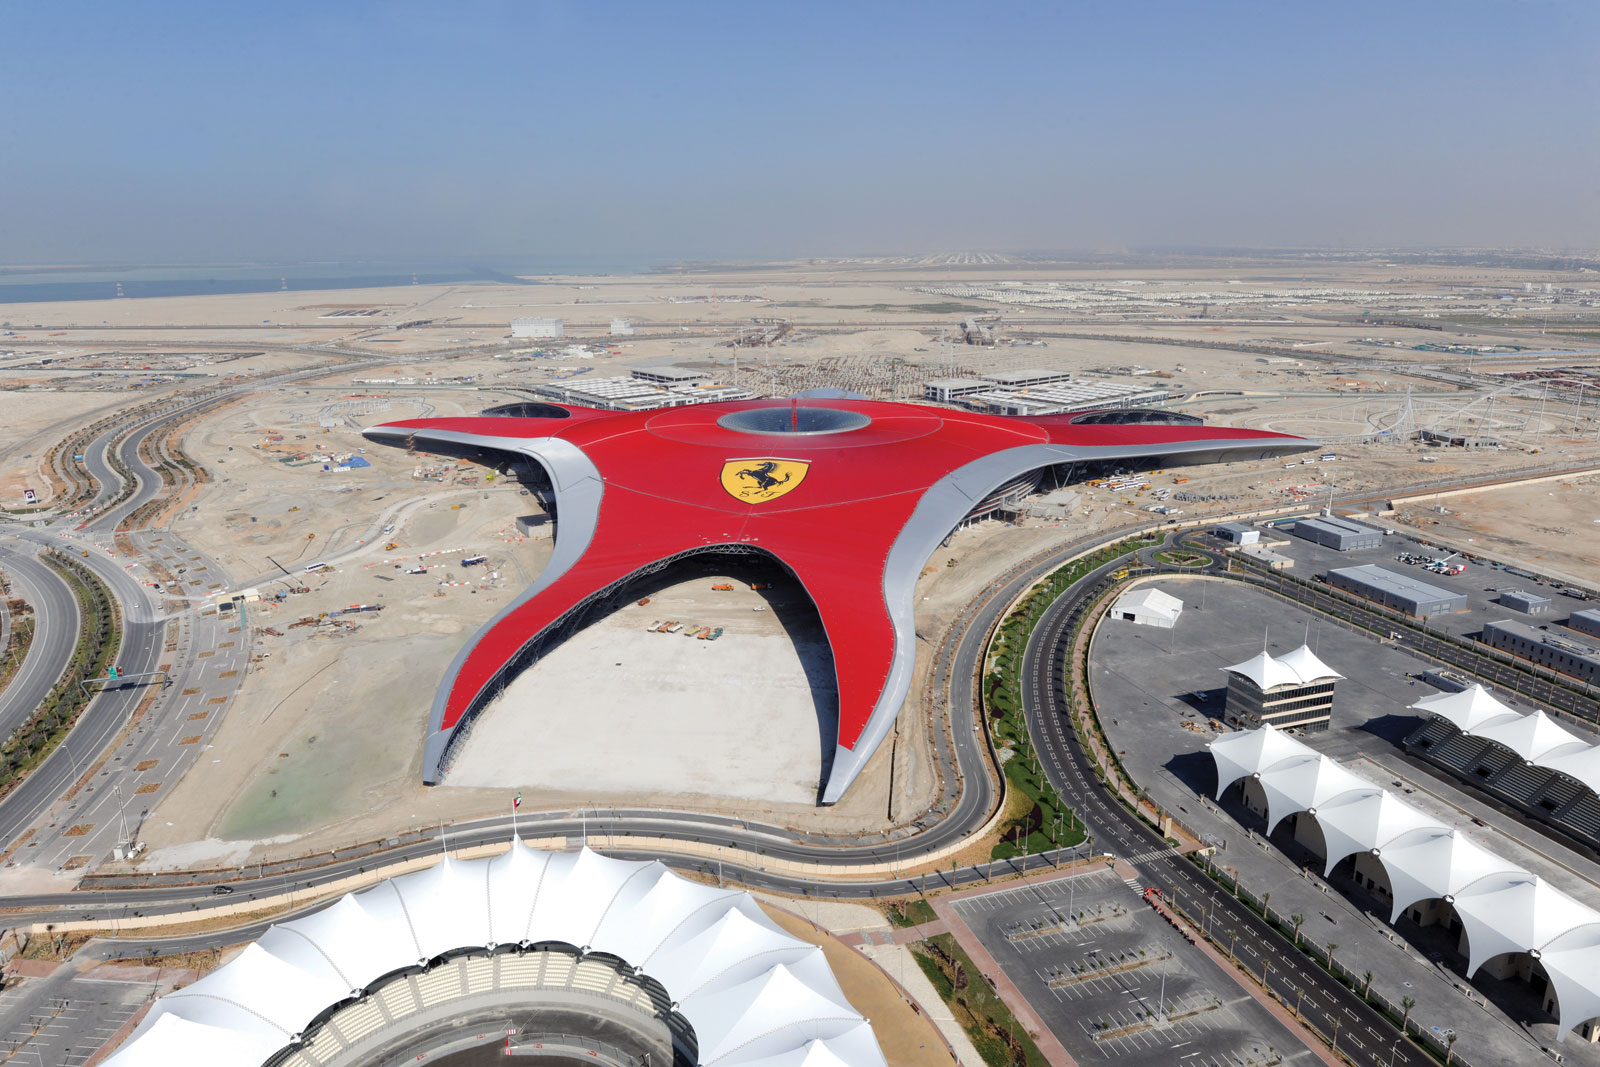 ferrari world abu dhabi uae by benoy awesome architecture. Black Bedroom Furniture Sets. Home Design Ideas